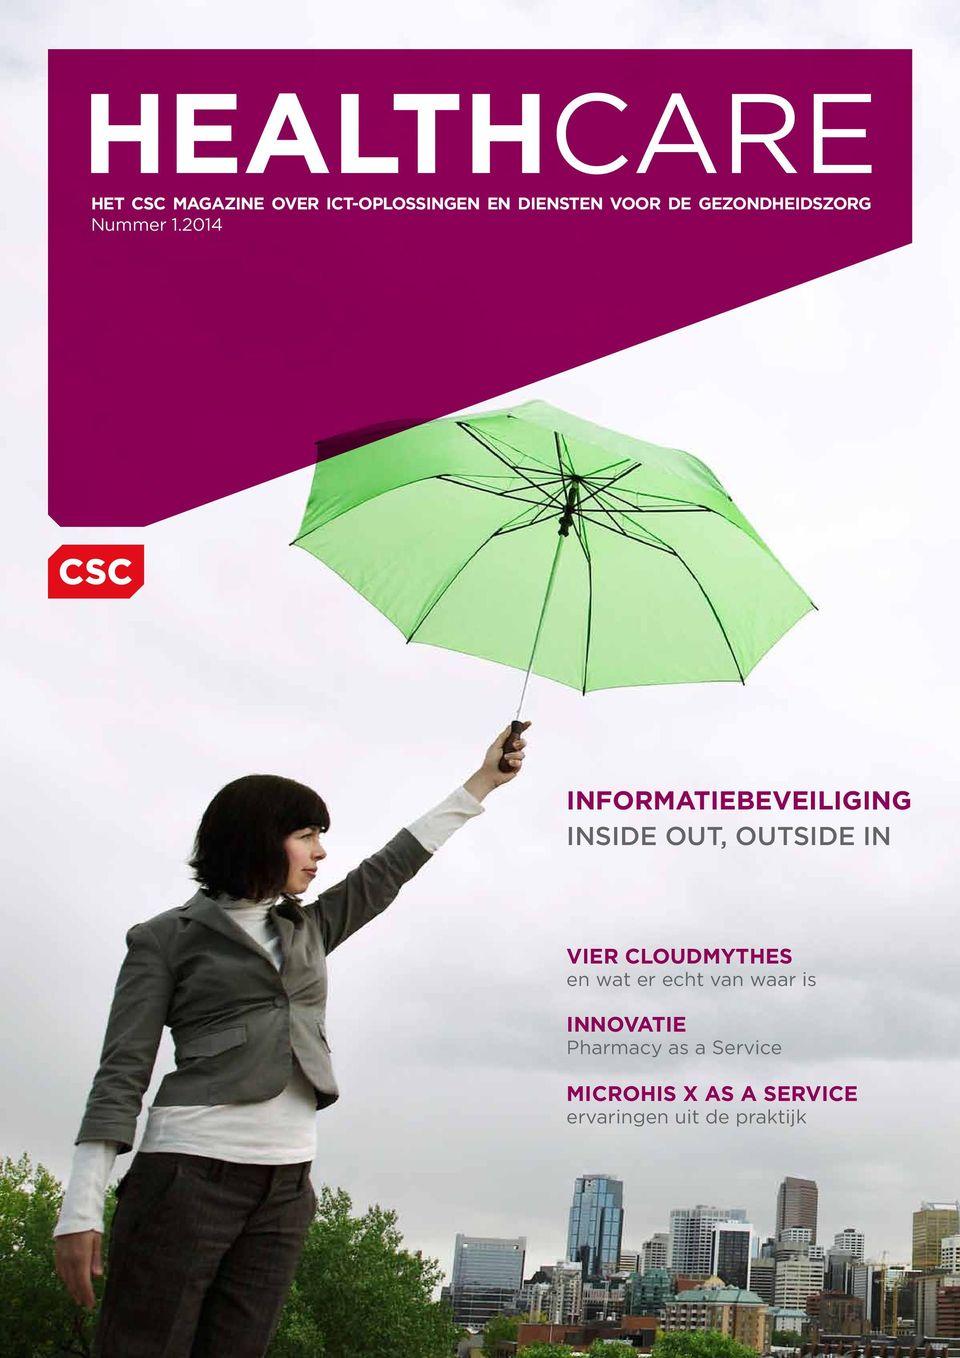 2014 INFORMATIEBEVEILIGING Inside out, outside in VIER CLOUDMYTHES